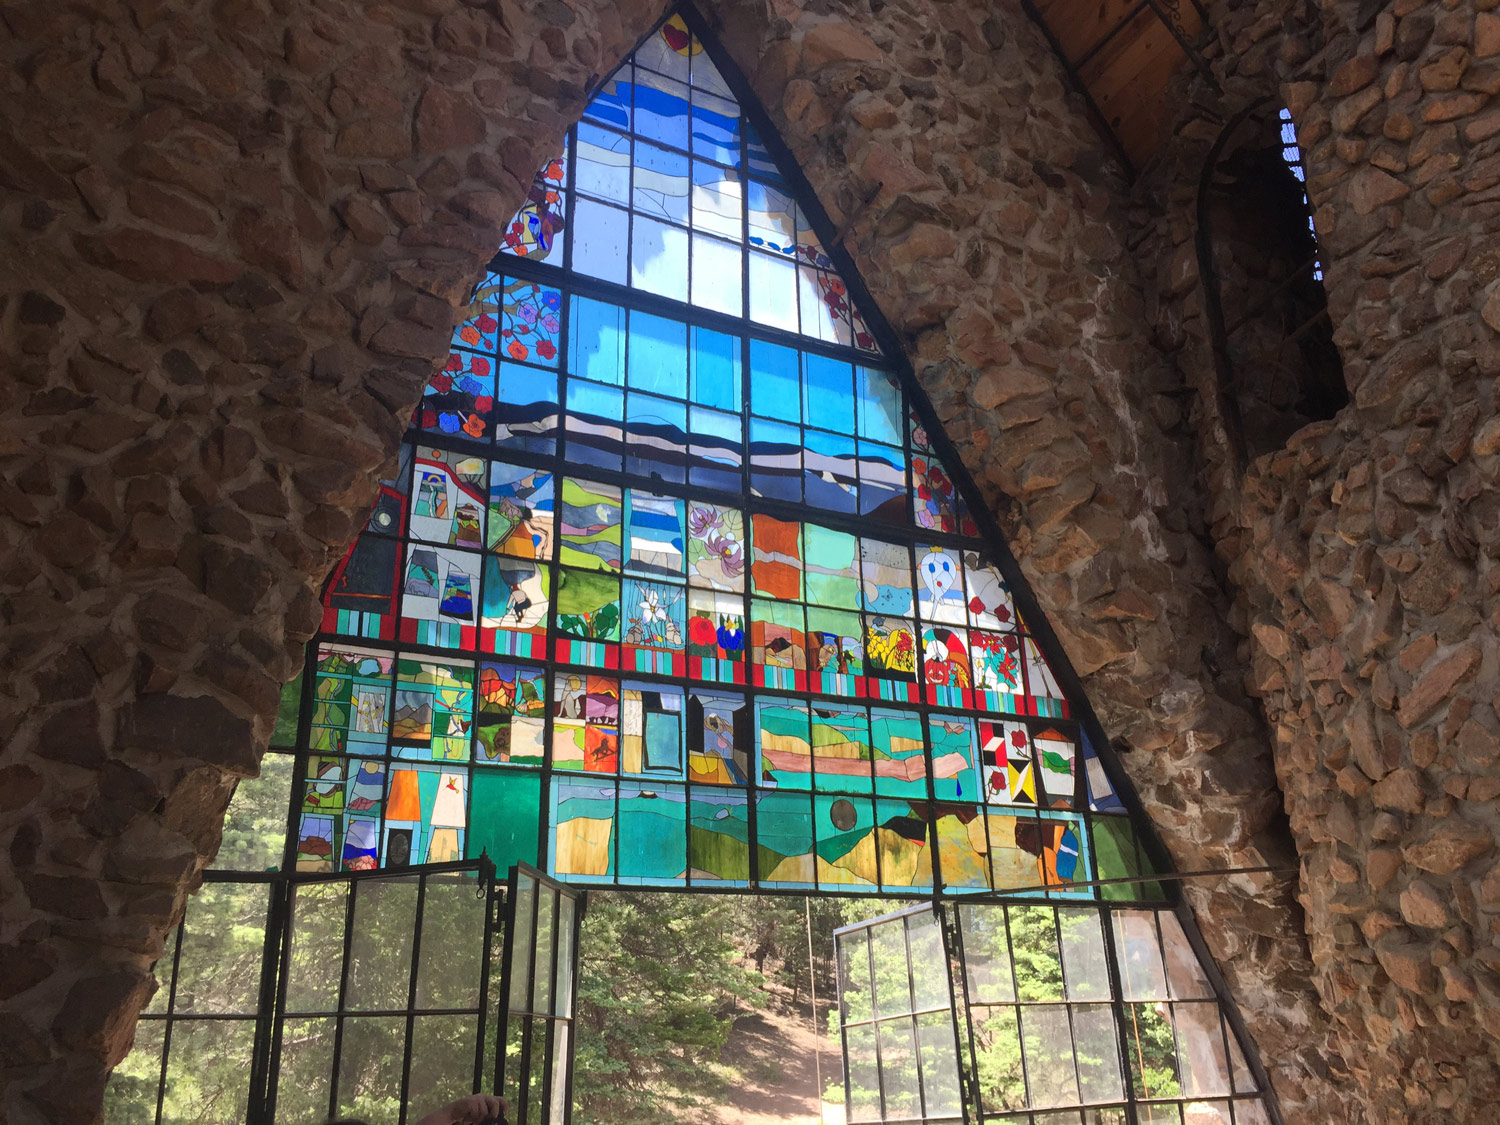 Custom stained glass memorials are created by a local artist and installed by Bishop.